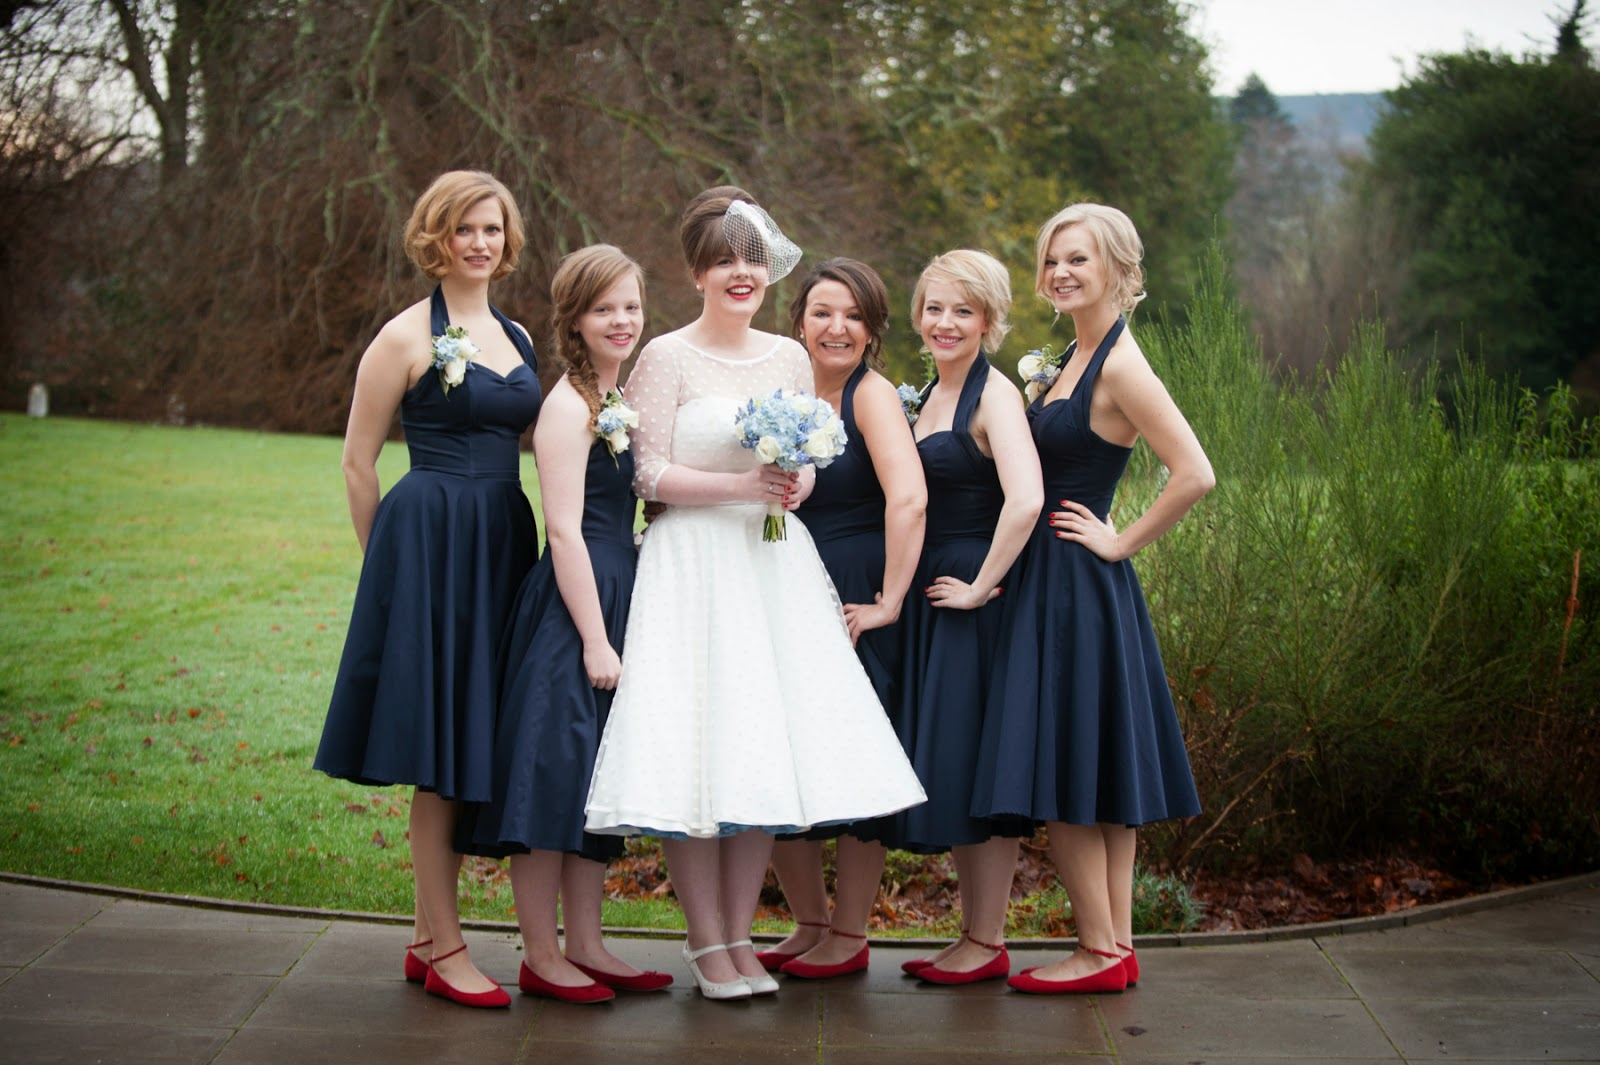 Bride and her bridesmaids at Achnagairn House in the Scottish Highlands. Bridesmaids wearing red shoes with fifties style dresses